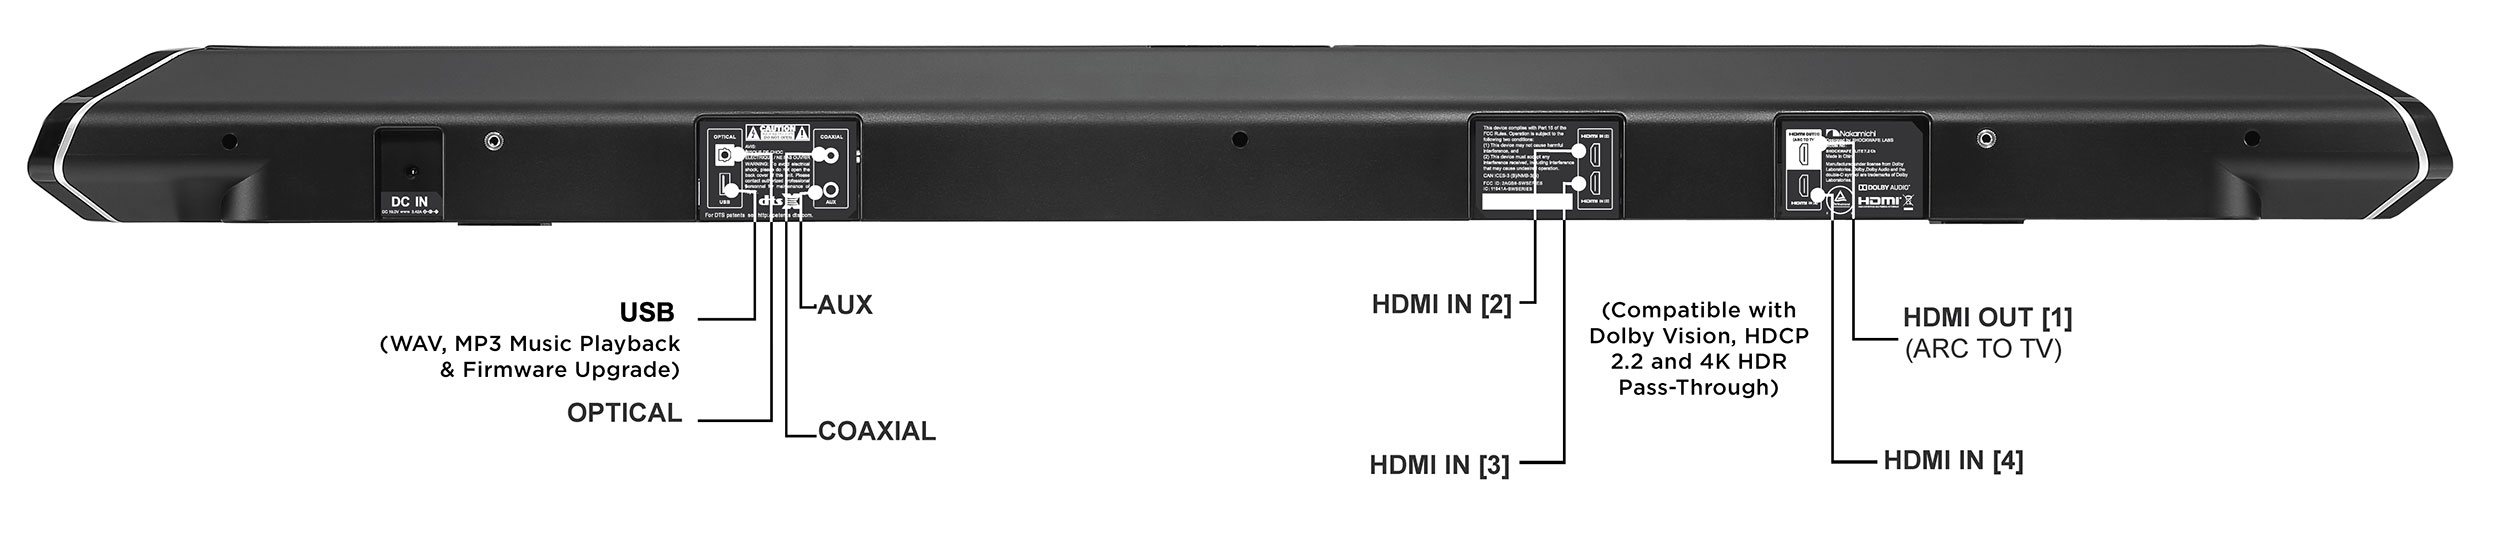 soundbar-back-updated.jpg